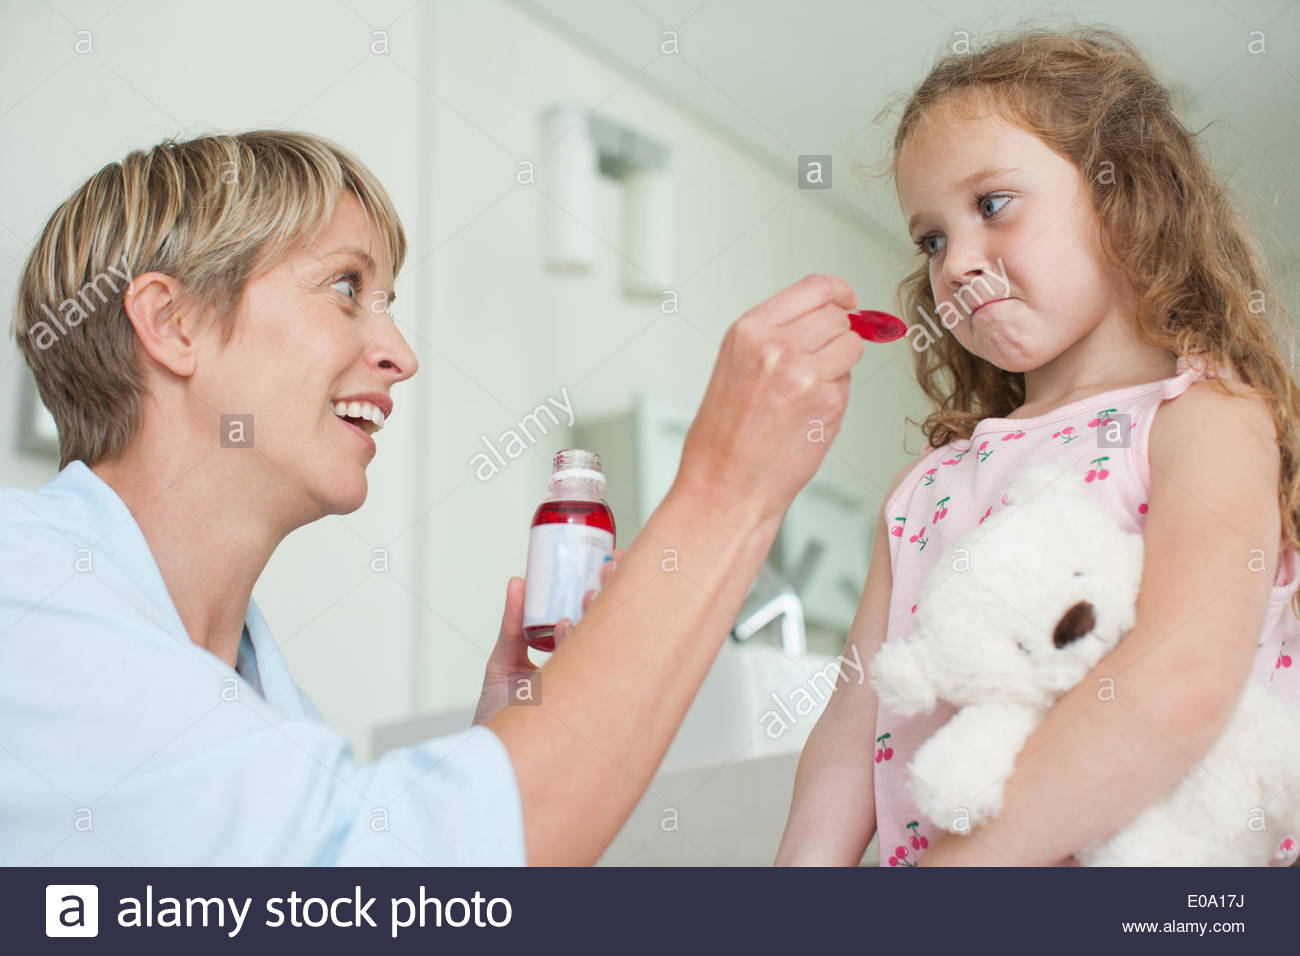 Mother giving daughter medicine - Stock Image